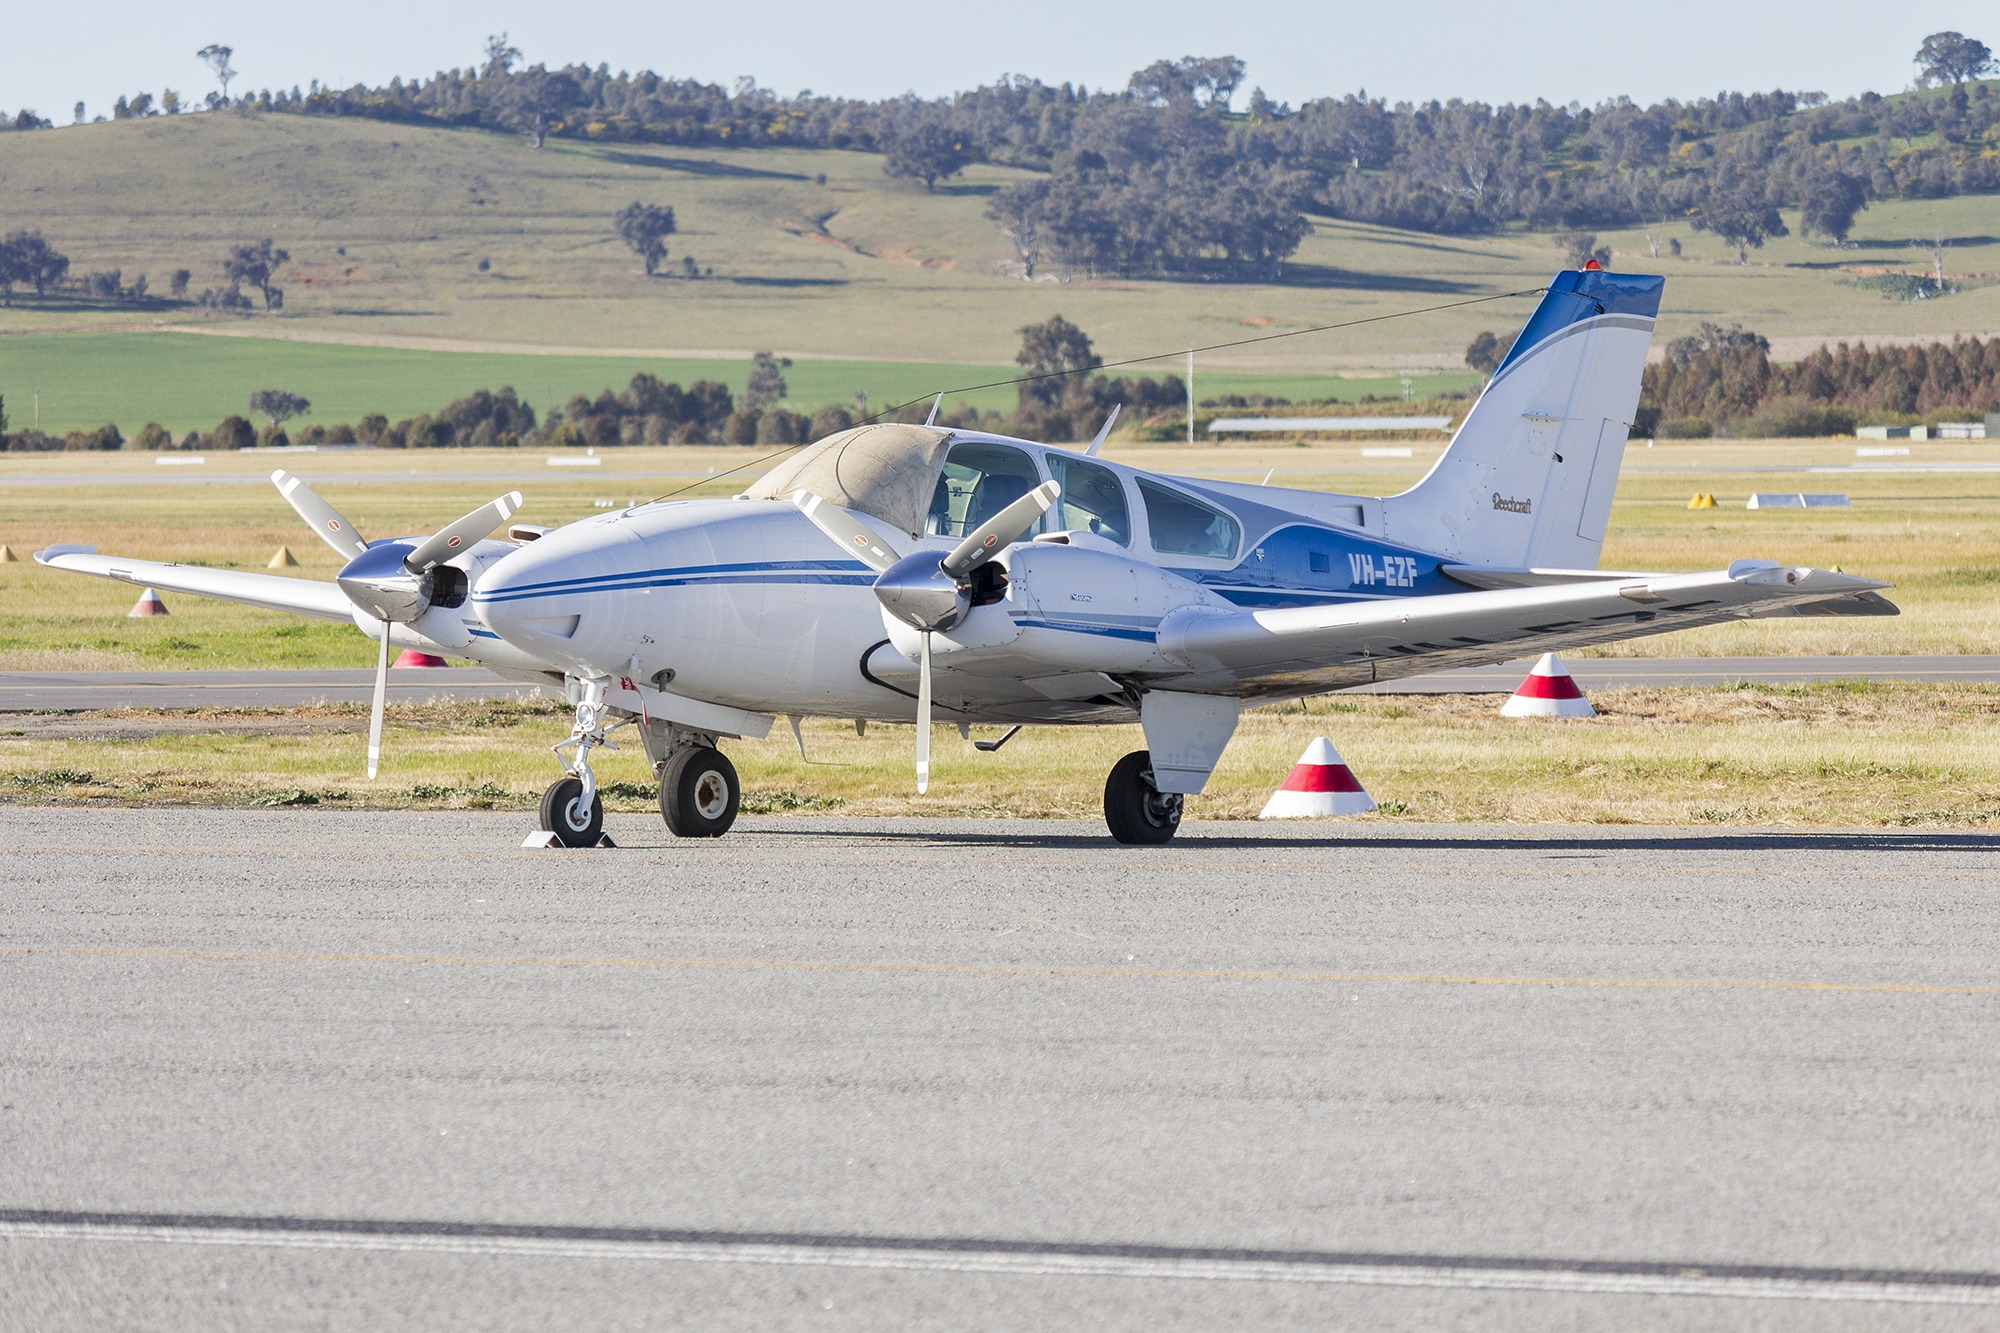 File:Broken Hill Aviation (VH-EZF) Beechcraft E55 Baron at Wagga Wagga